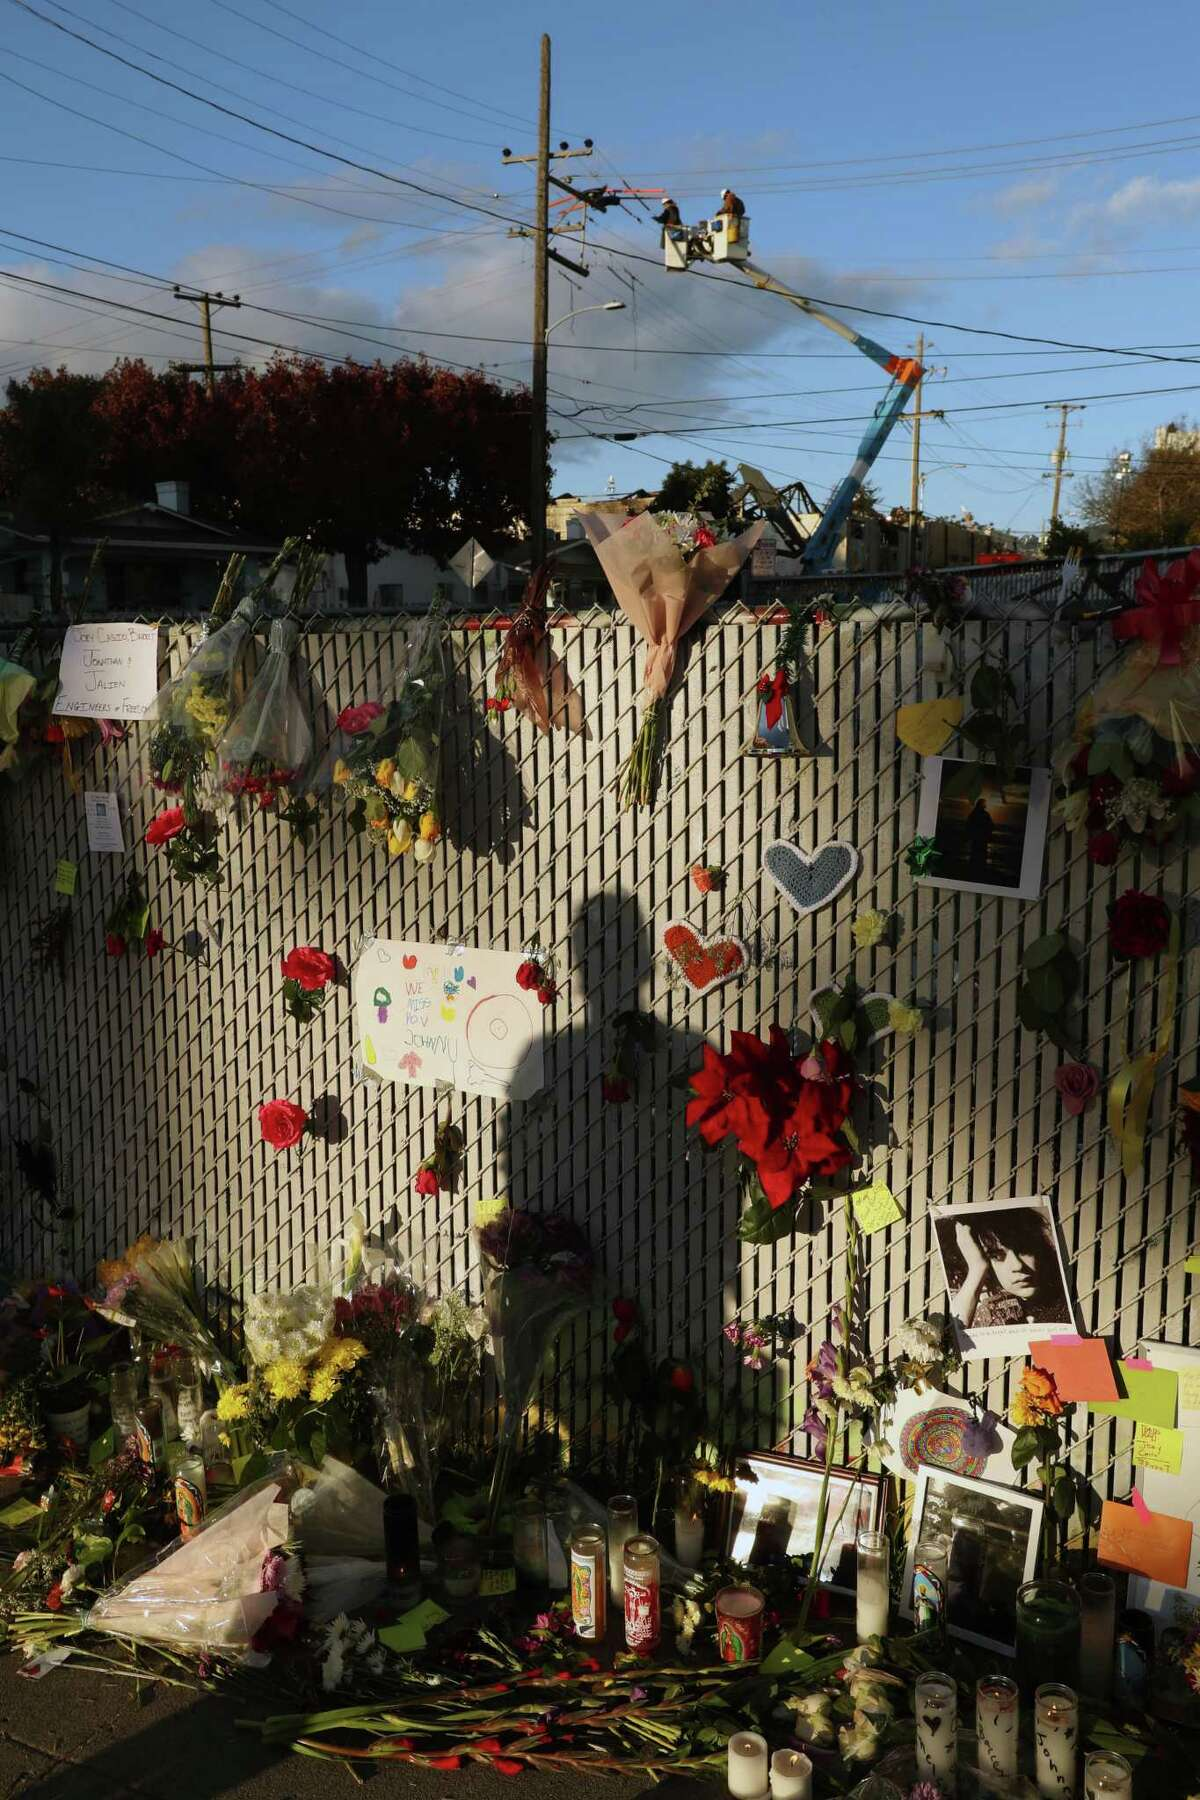 December 6, 2016 - As recovery efforts come to an end at the Ghost Ship warehouse, a memorial for fire victims grows on E. 12th Street in Oakland, California.